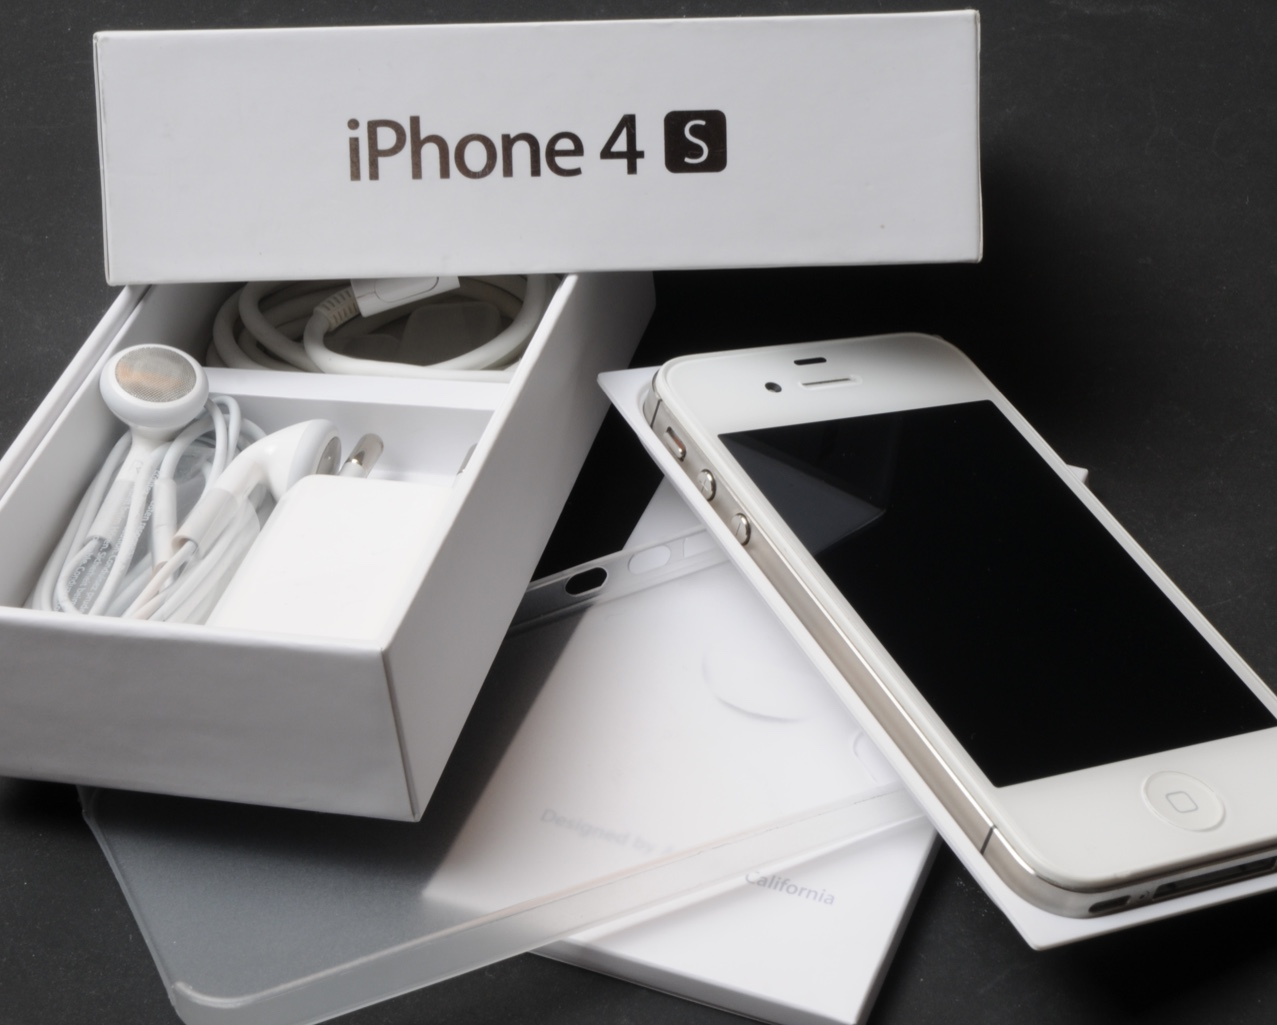 apple iphone 4s 64gb wei ohne simlock smartphone ebay. Black Bedroom Furniture Sets. Home Design Ideas